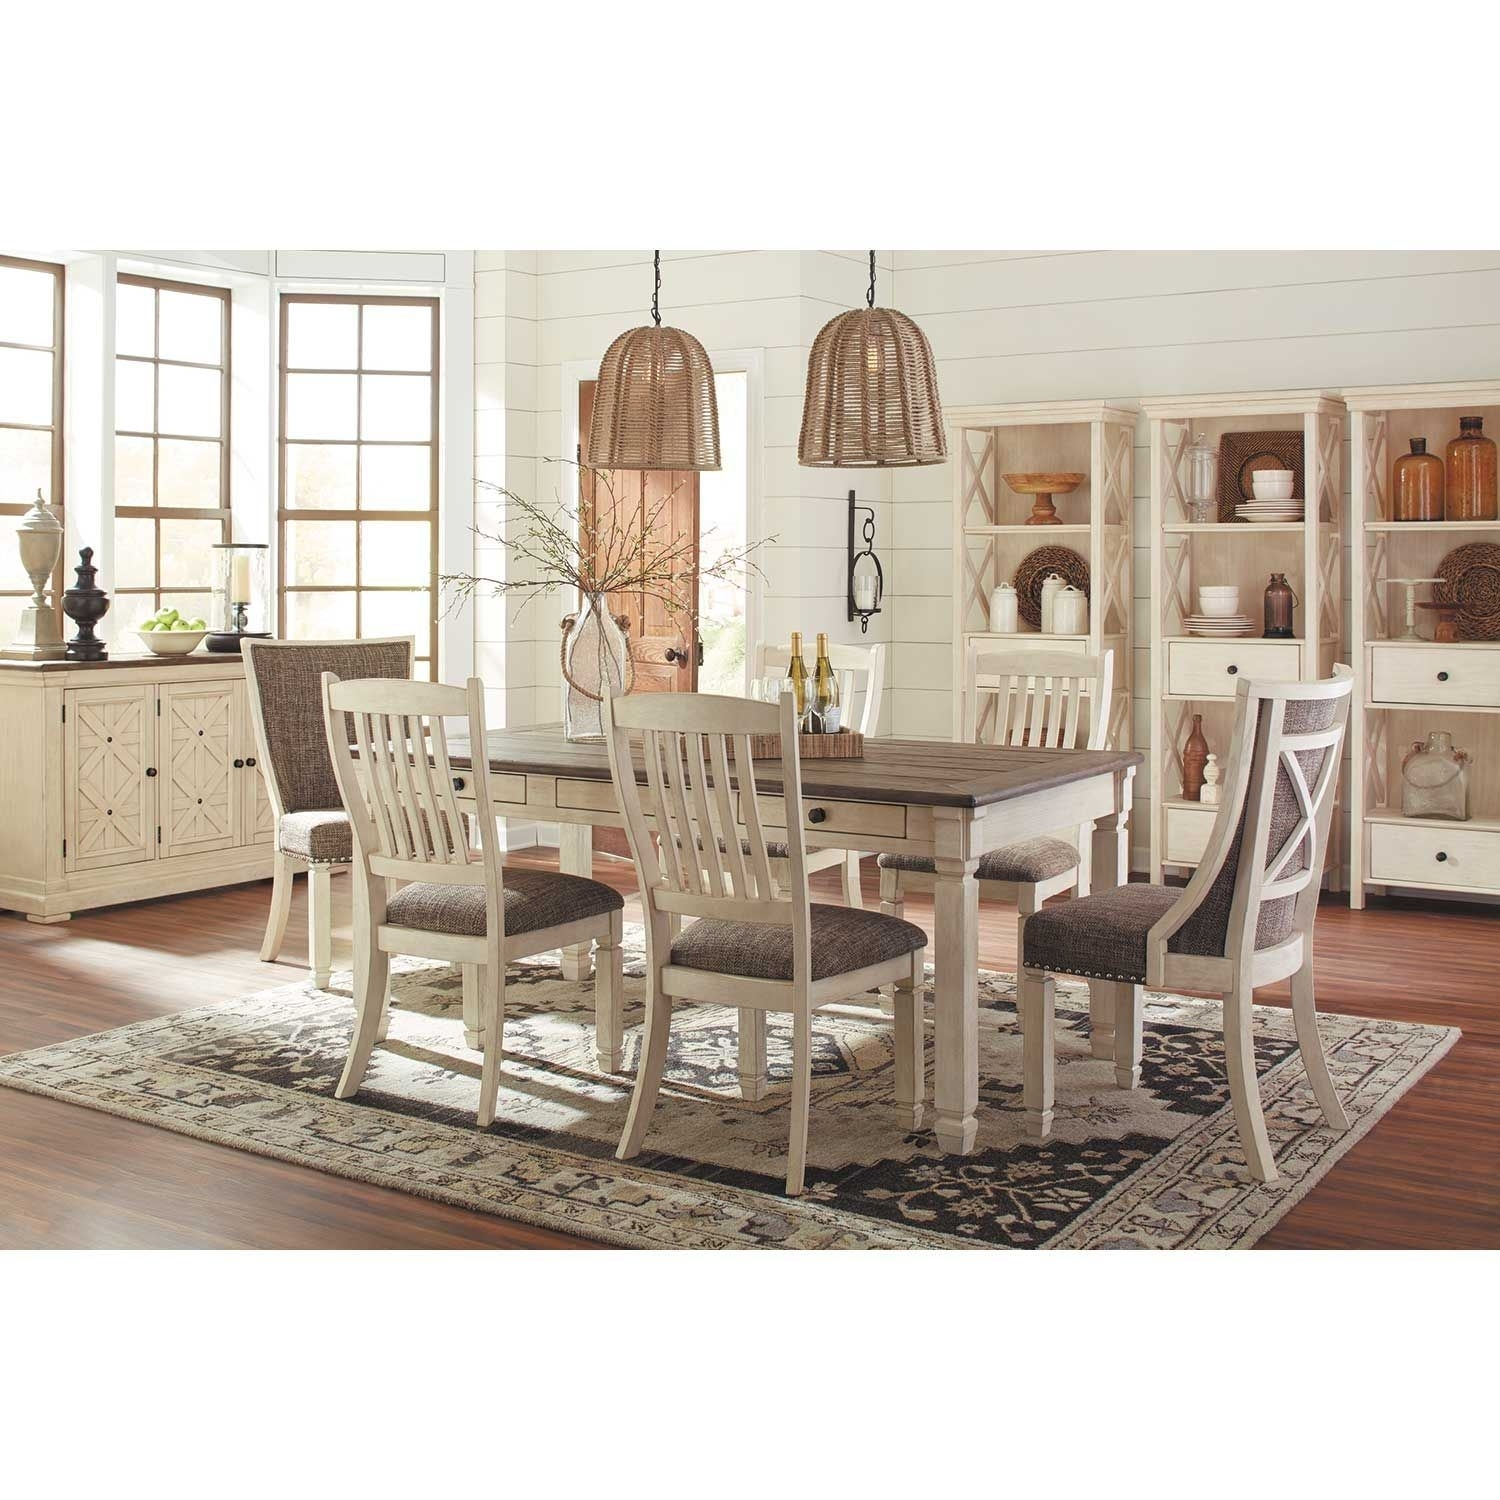 Bolanburg 7 Piece Dining Set D647 7Pc | Ashley Furniture | Afw In Latest Market 7 Piece Dining Sets With Host And Side Chairs (View 5 of 20)